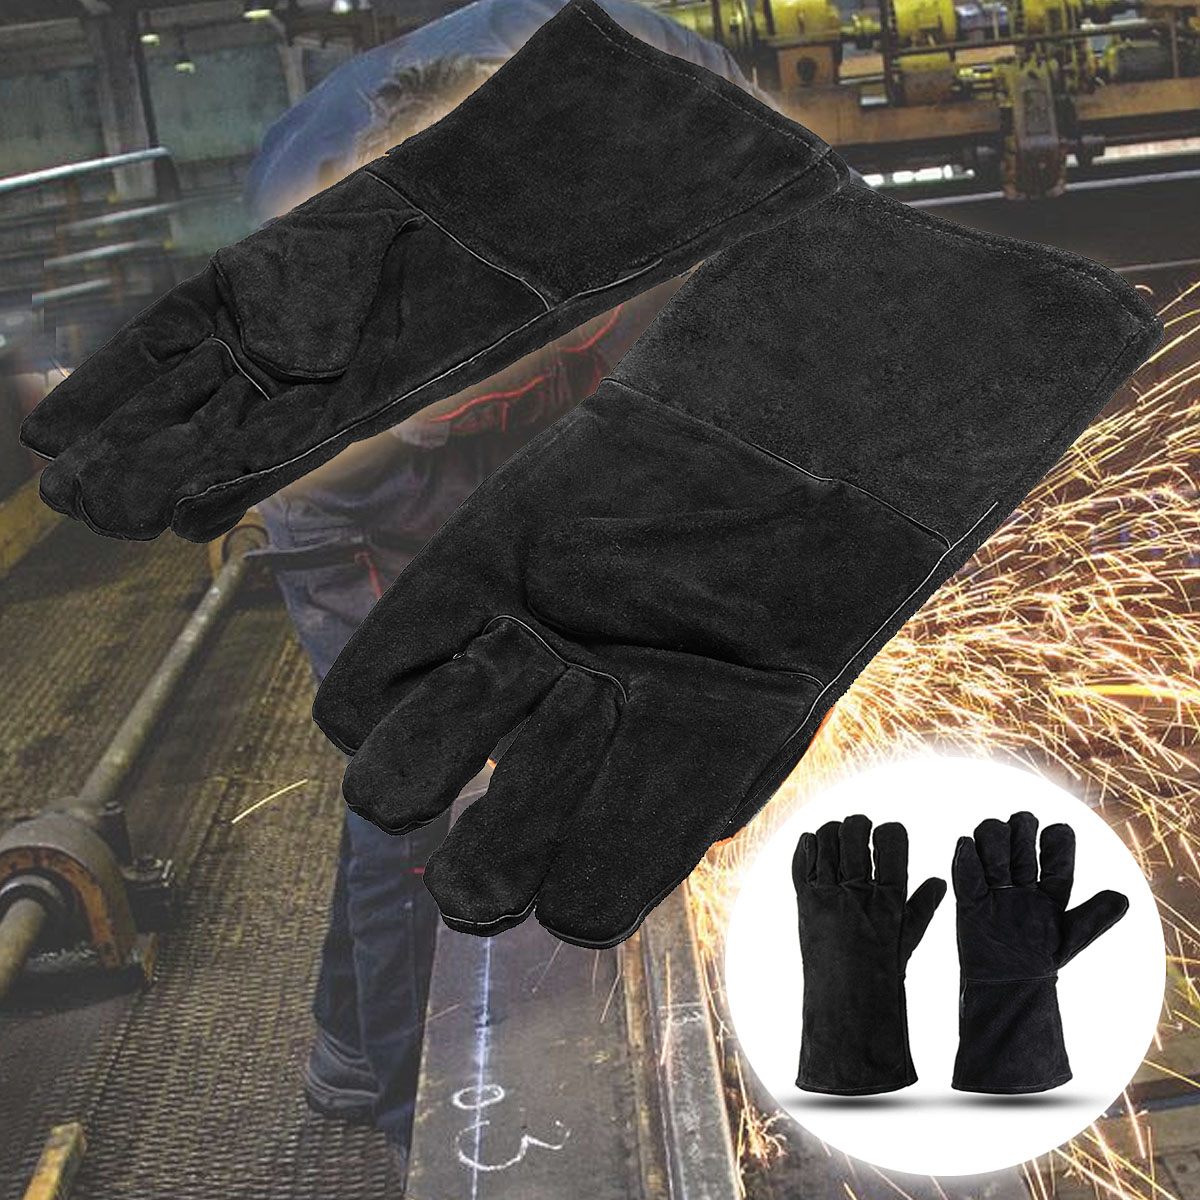 Safurance 32cm XL Heavy Duty Welding Gloves Stoves PU Leather Cowhide Protect Welder Hands Workplace Safety GloveSafurance 32cm XL Heavy Duty Welding Gloves Stoves PU Leather Cowhide Protect Welder Hands Workplace Safety Glove